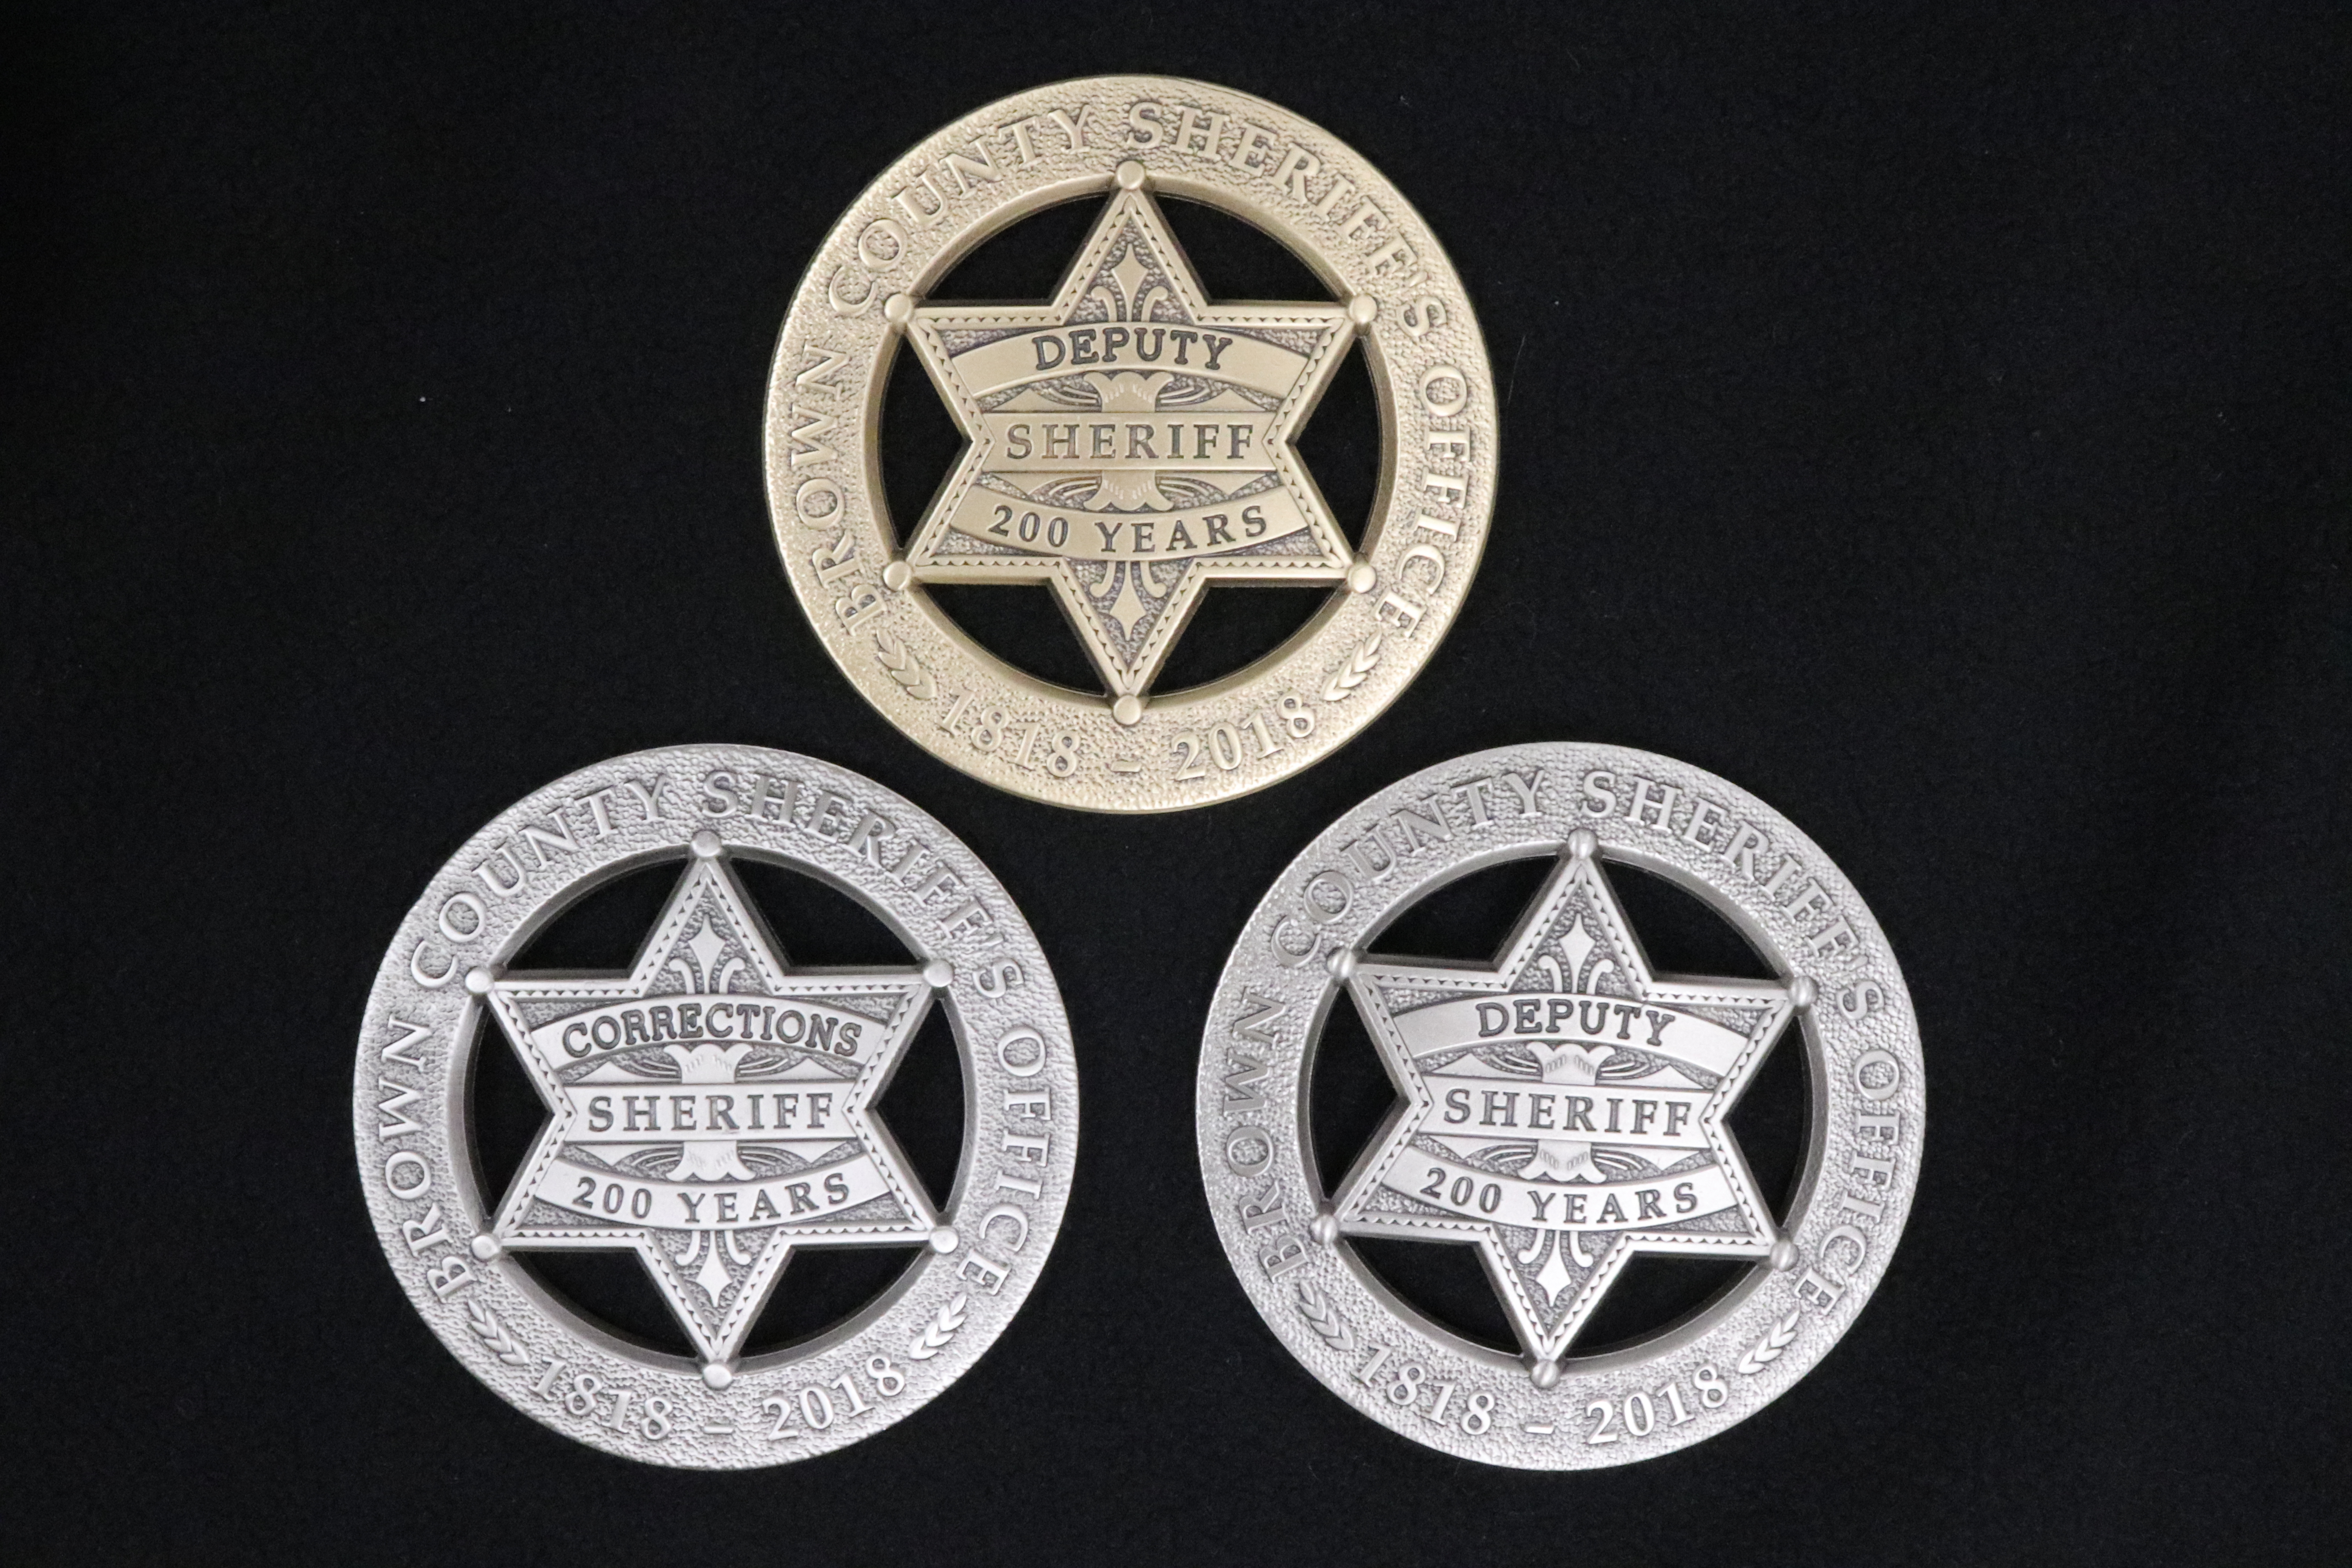 200 year badges